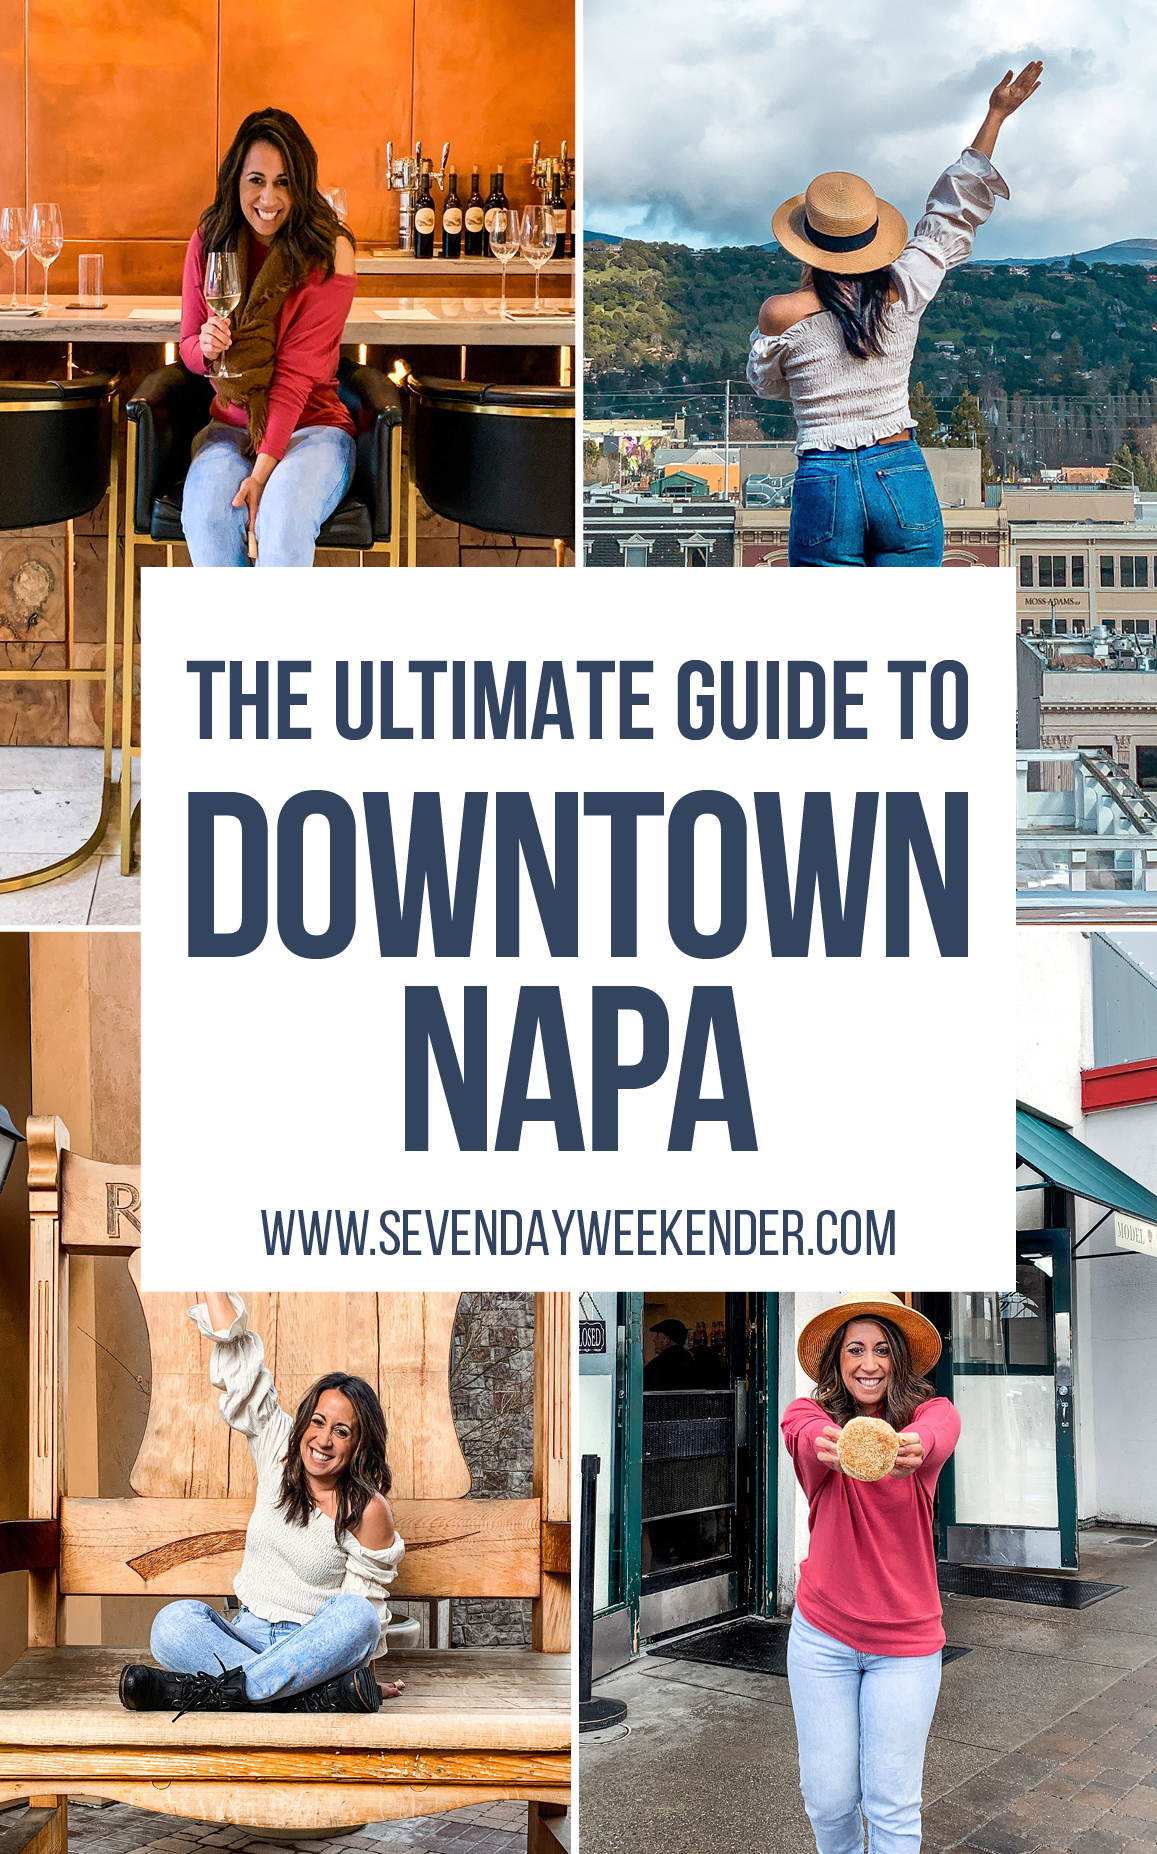 The Ultimate Guide to Downtown Napa